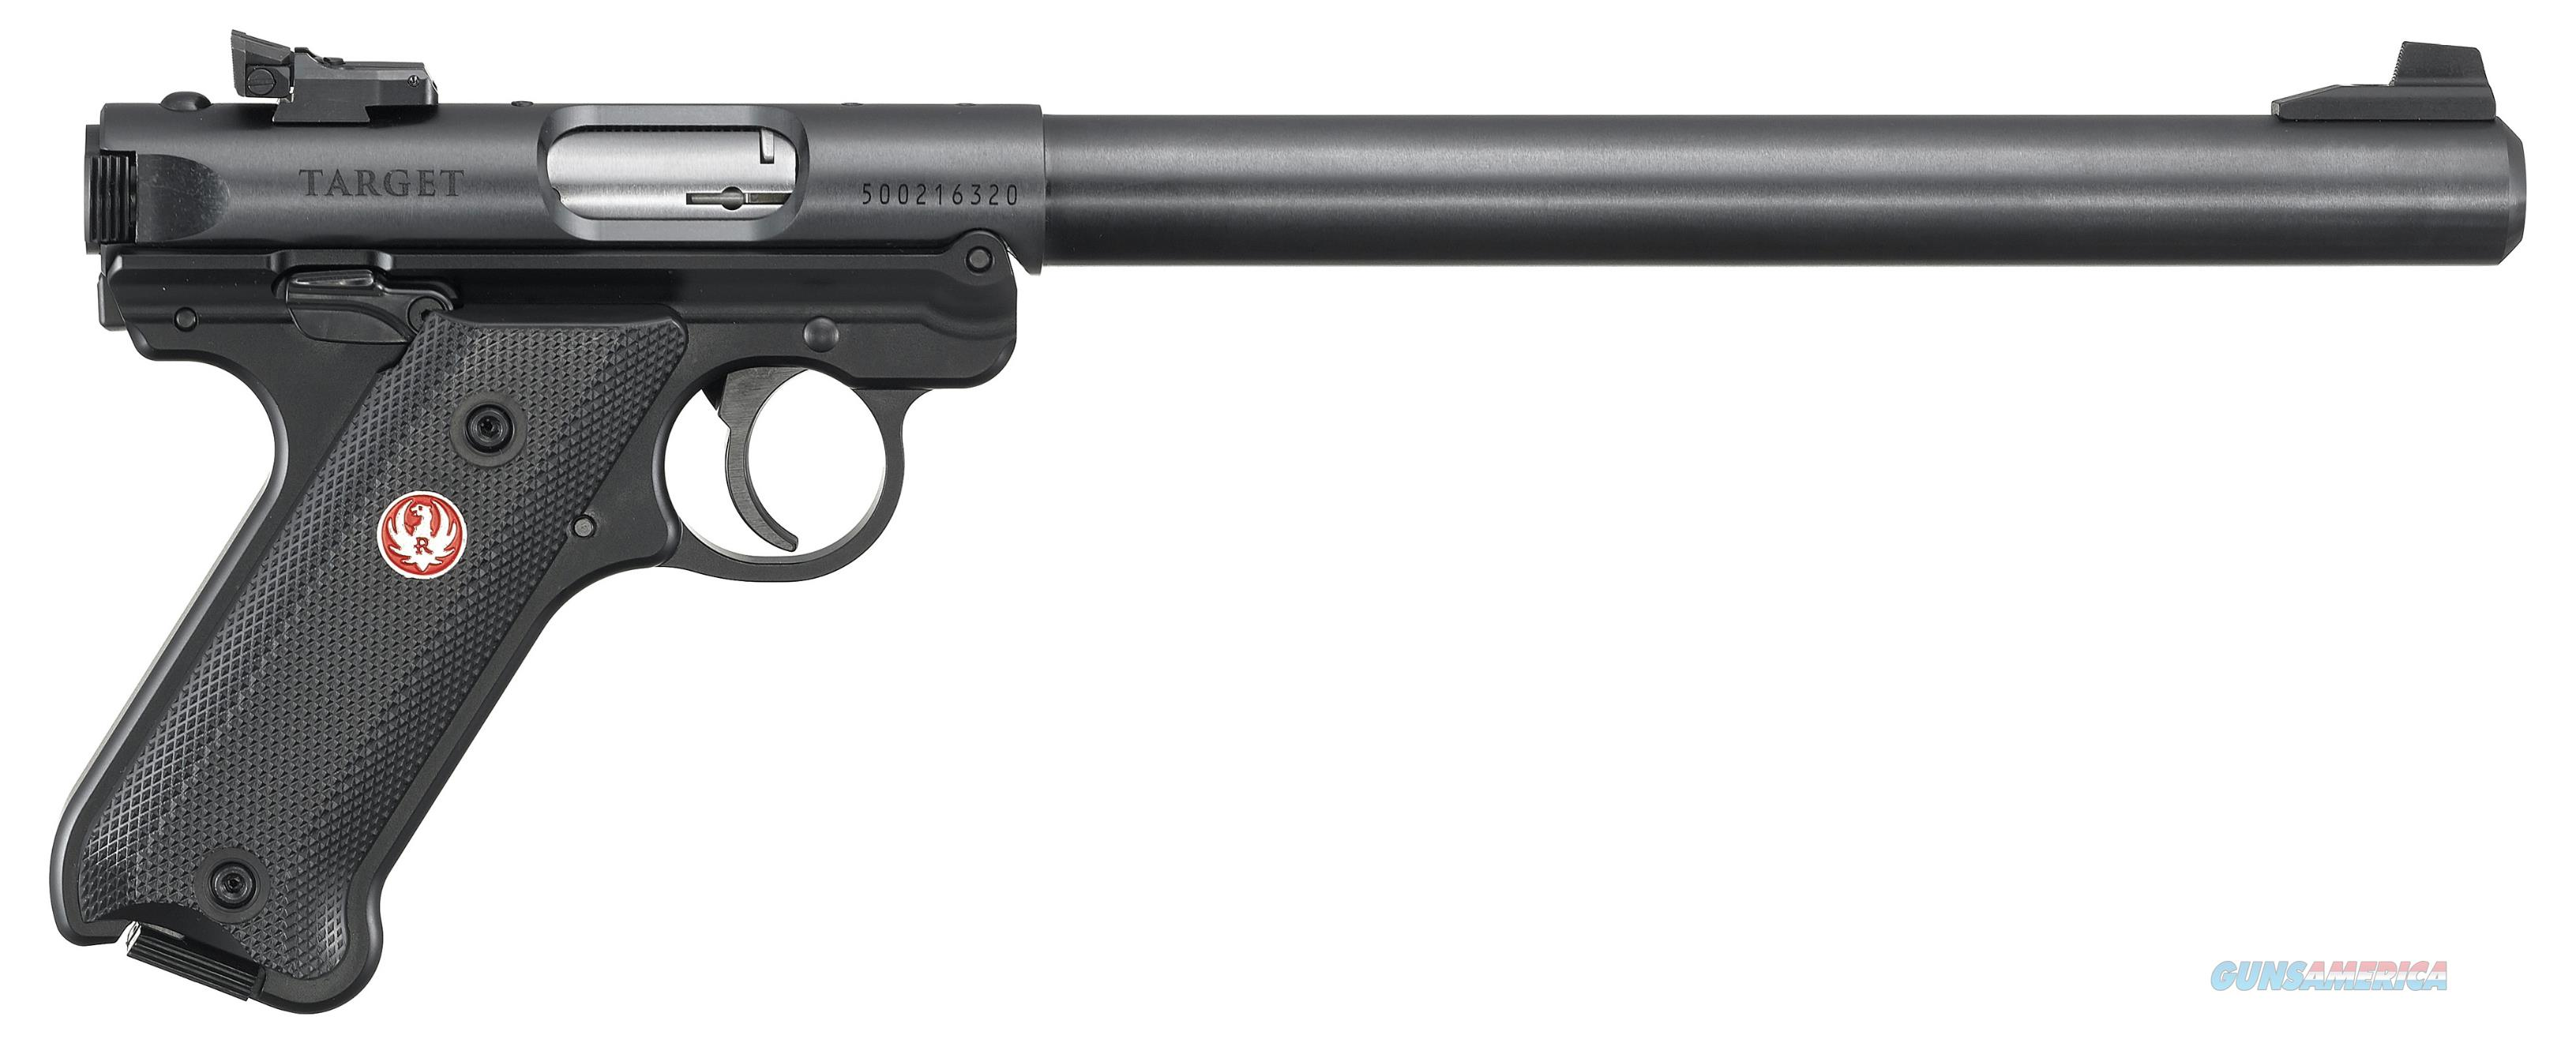 Ruger Mark Iv, Rug 40173 Mkiv  22lr Target  10in Bull As 10r Bl  Guns > Pistols > 1911 Pistol Copies (non-Colt)